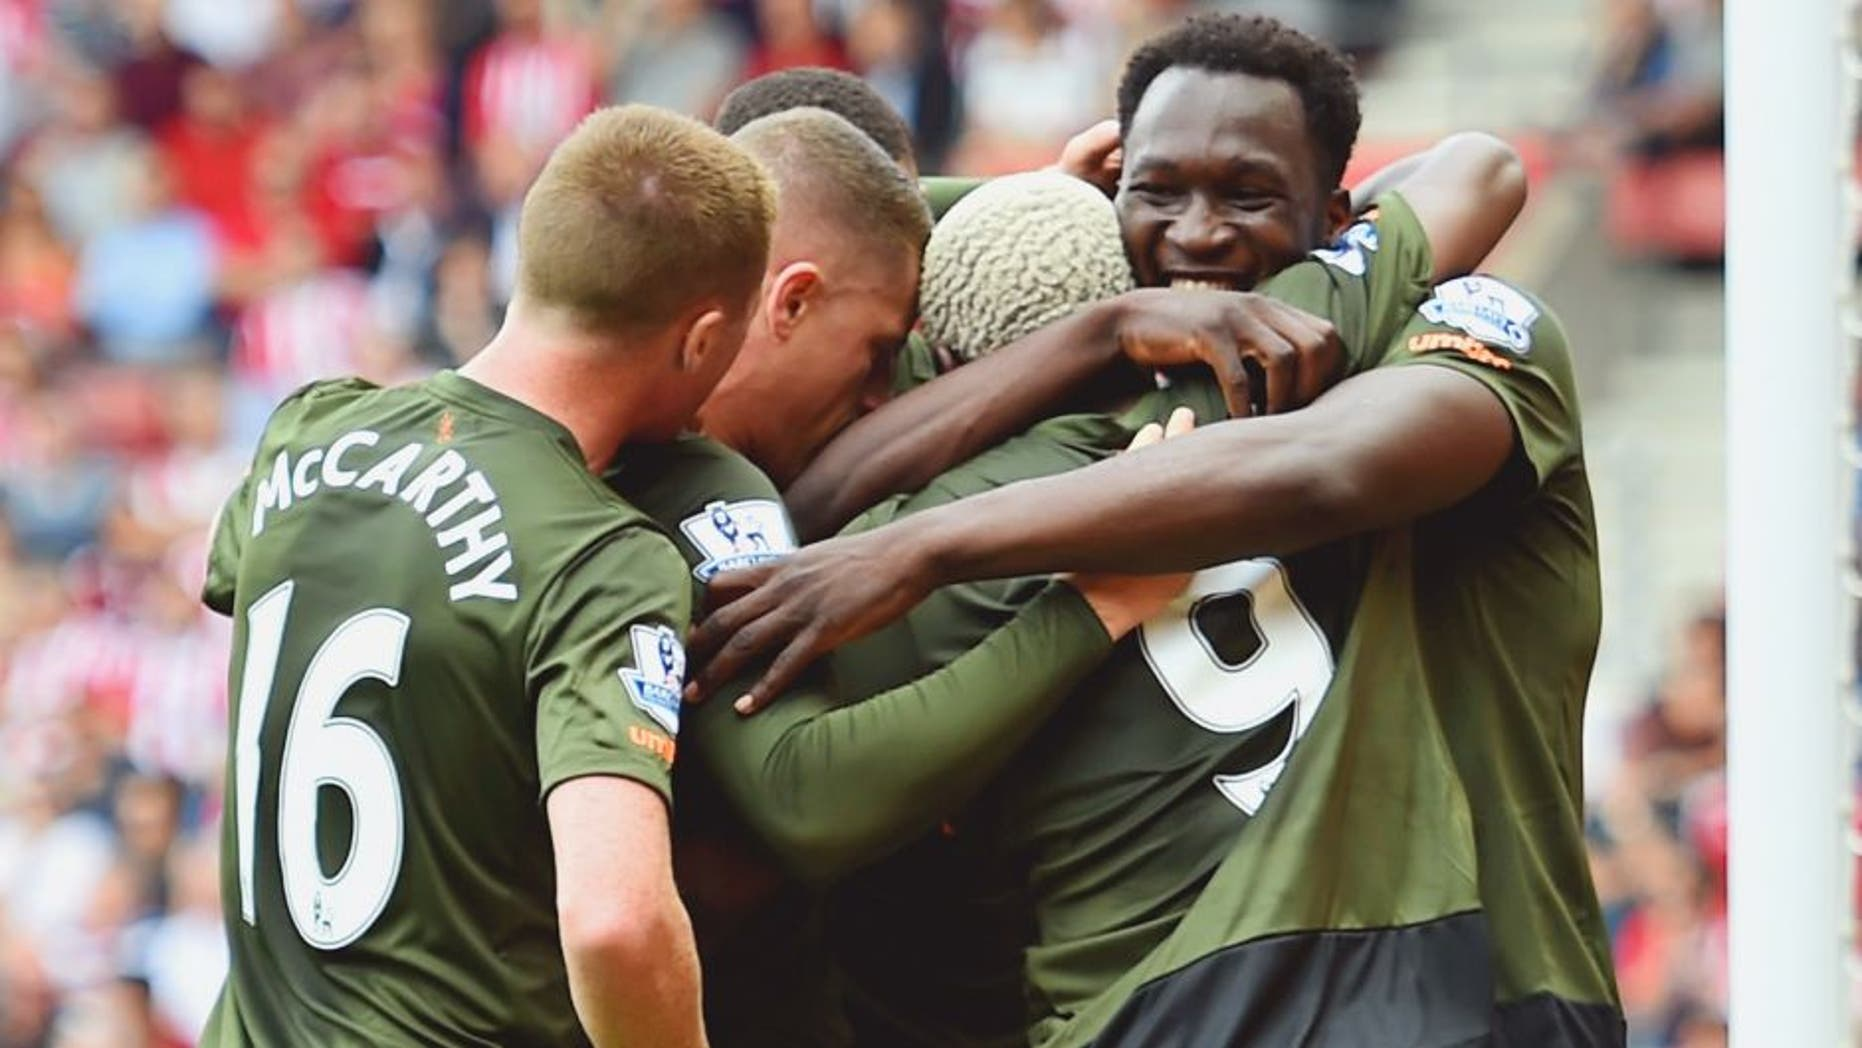 Romelu Lukaku (1st R) of Everton celebrates scoring his team's first goal with his team mates during the Barclays Premier League match between Southampton and Everton at St Mary's Stadium on August 15, 2015 in Southampton, United Kingdom. (Photo by Christopher Lee/Getty Images)